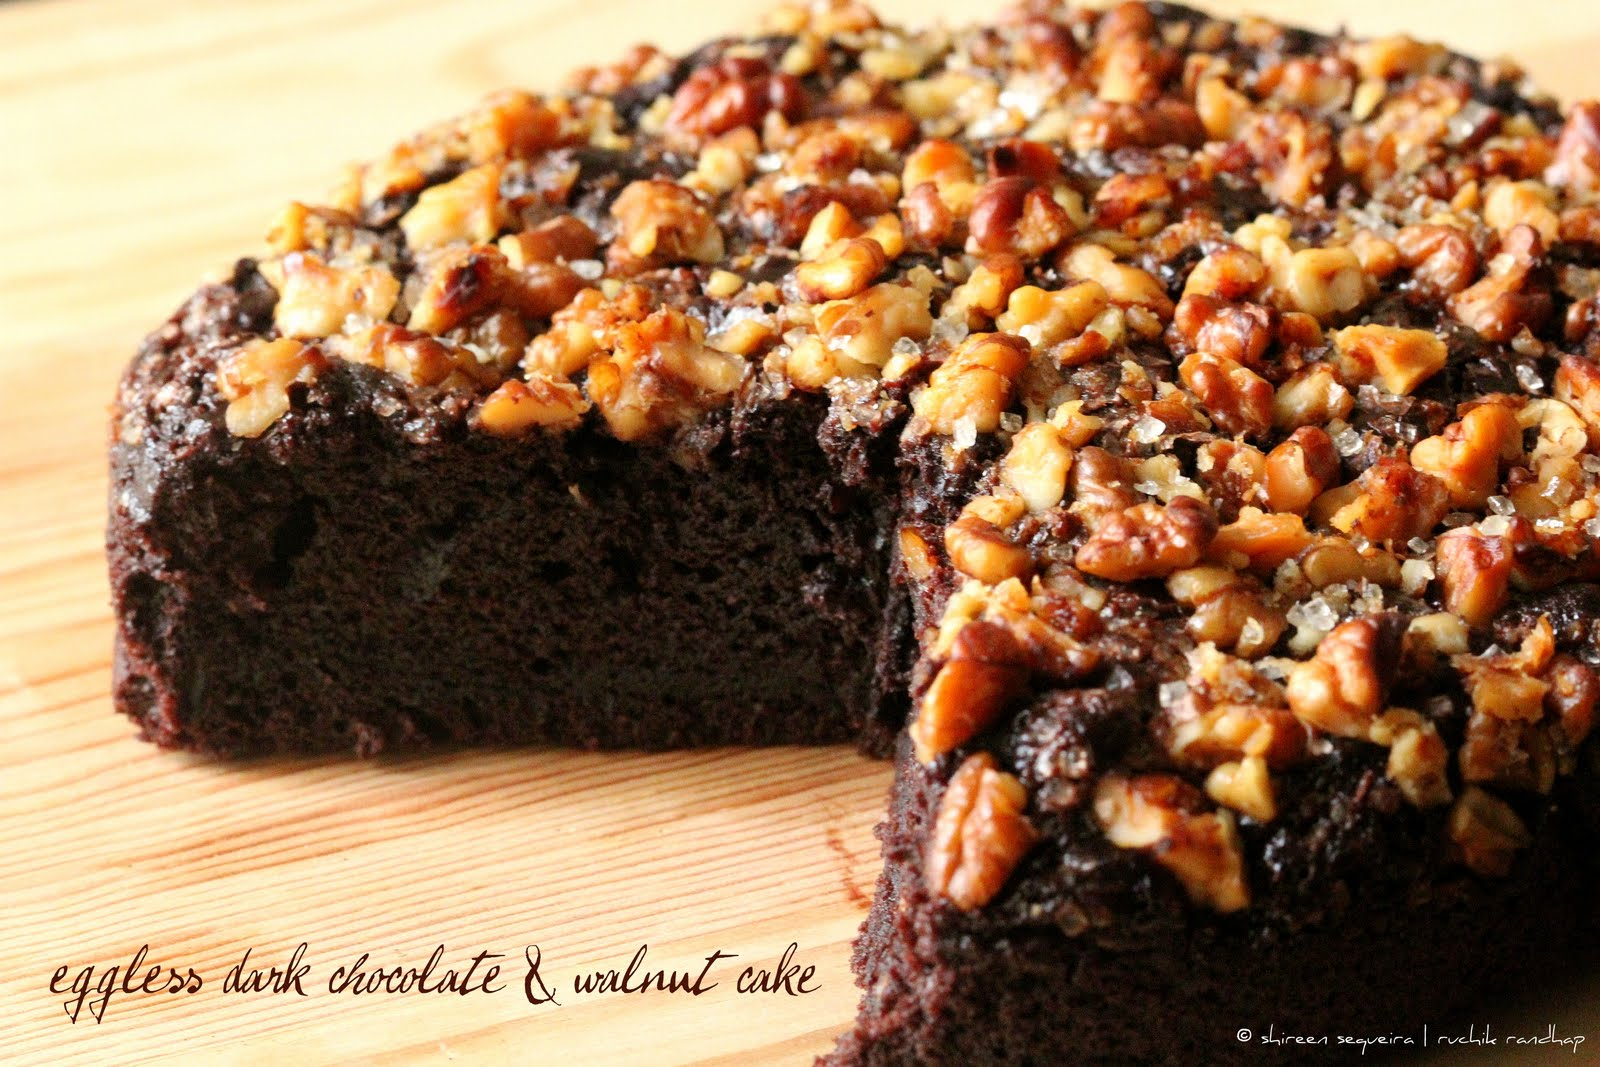 Chocolate Walnut Cake Images : Eggless Dark Chocolate & Walnut Cake - Ruchik Randhap